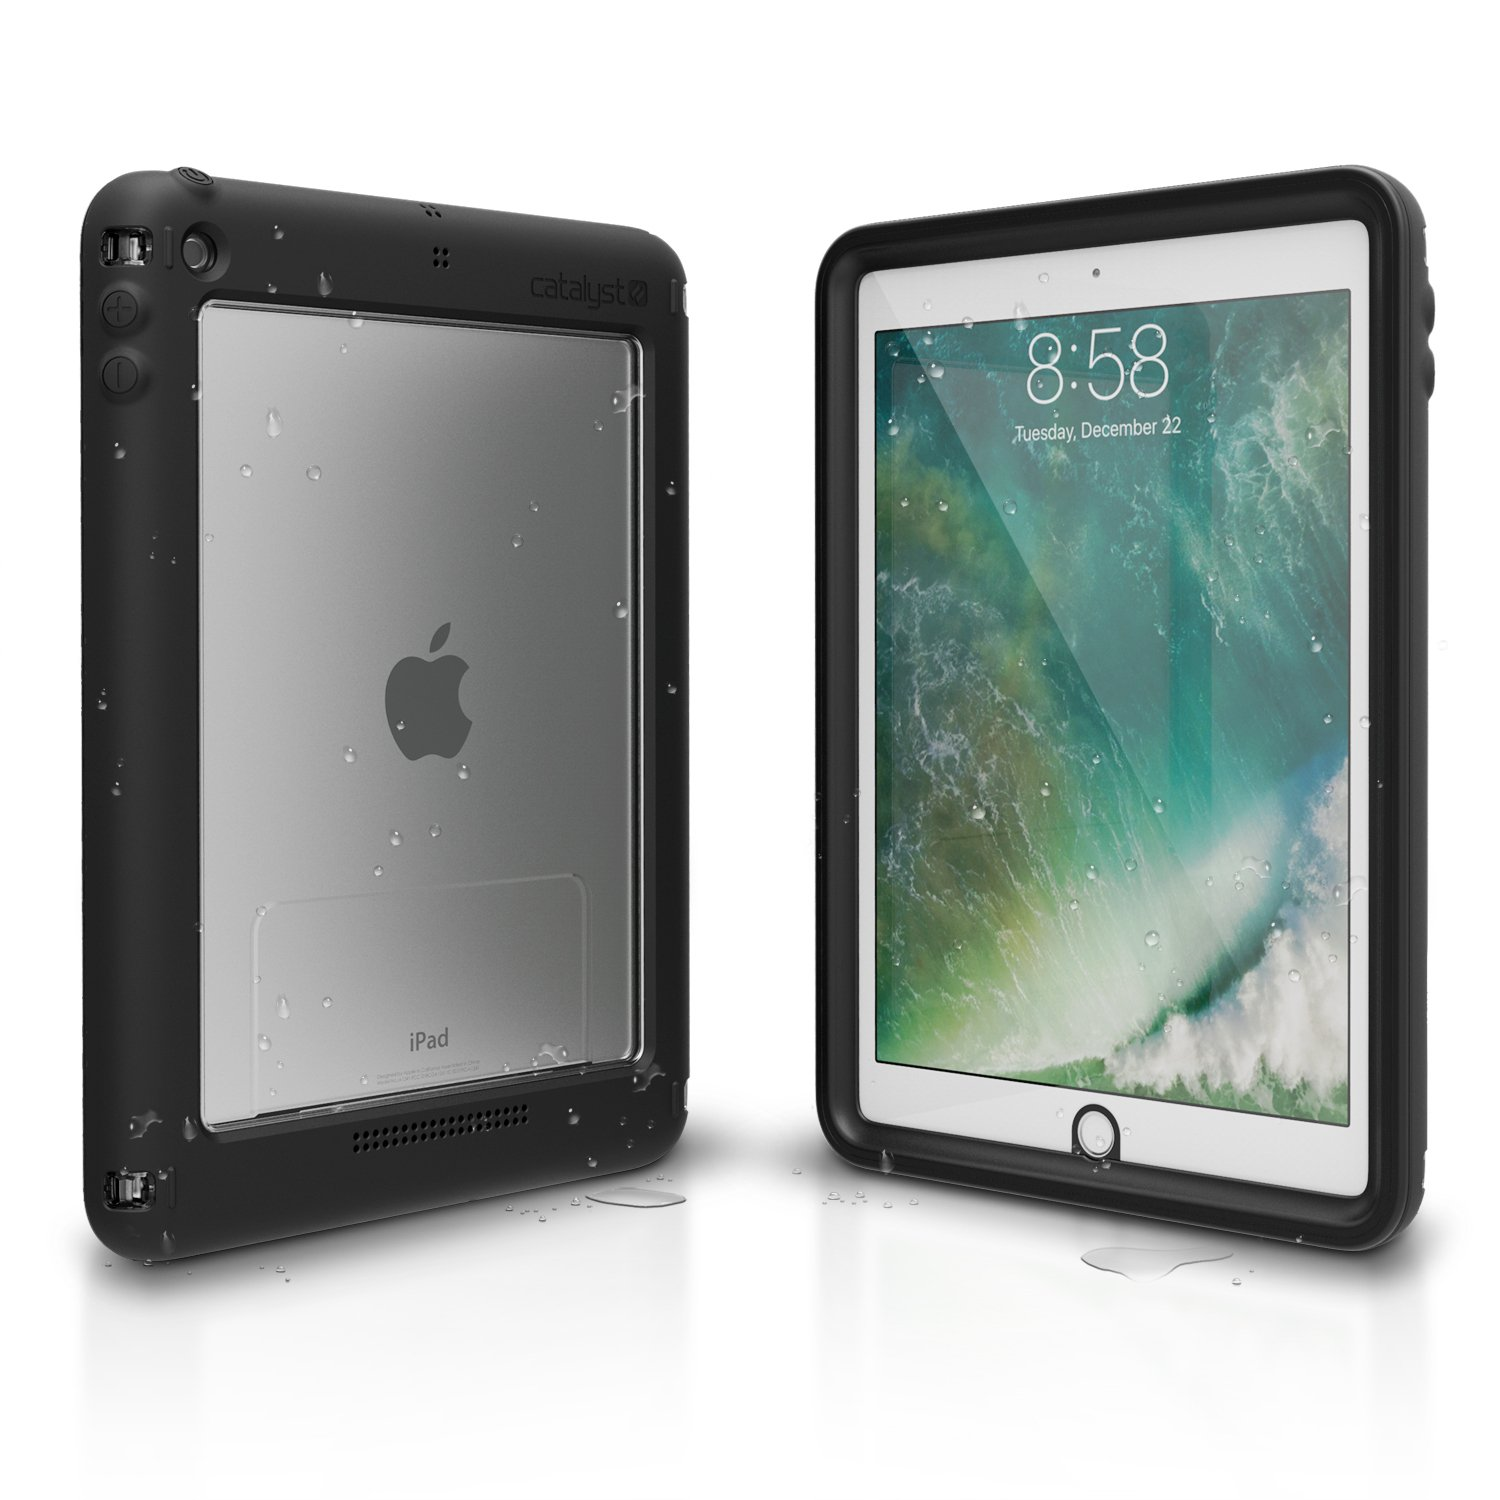 Catalyst iPad 2017 case [Smart Waterproof Shockproof] iPad 9.7 inch Protective Case [Compatible with New iPad 6th generation] Premium Quality Cover High Touch Sensitivity, Multi Position Stand (Black)